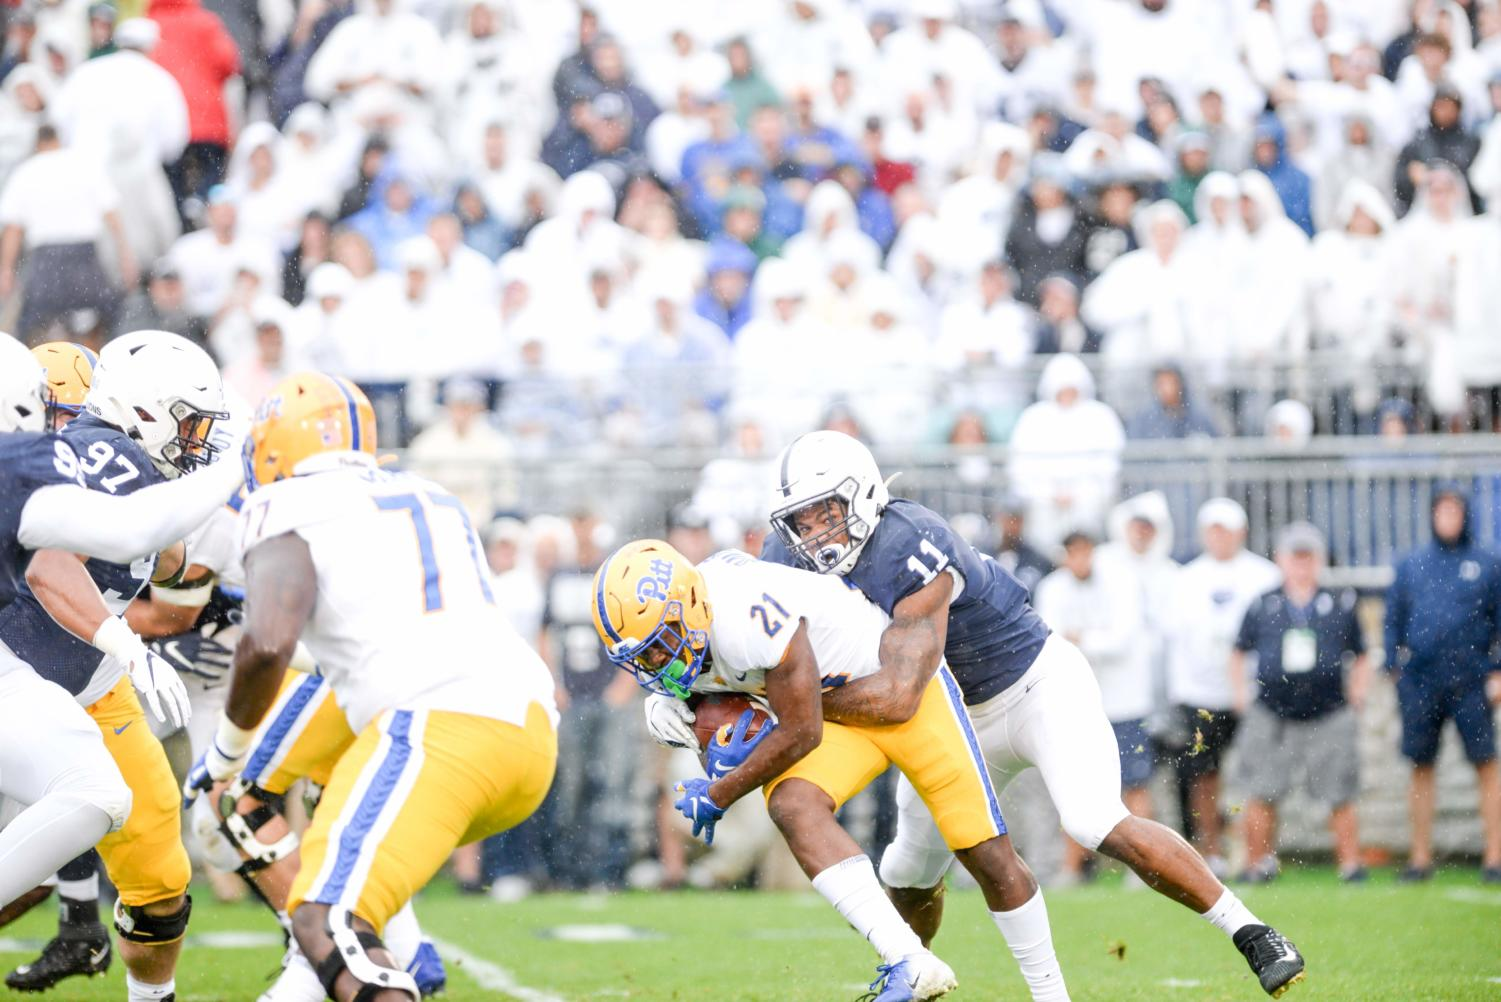 Junior running back AJ Davis is tackled in the backfield.